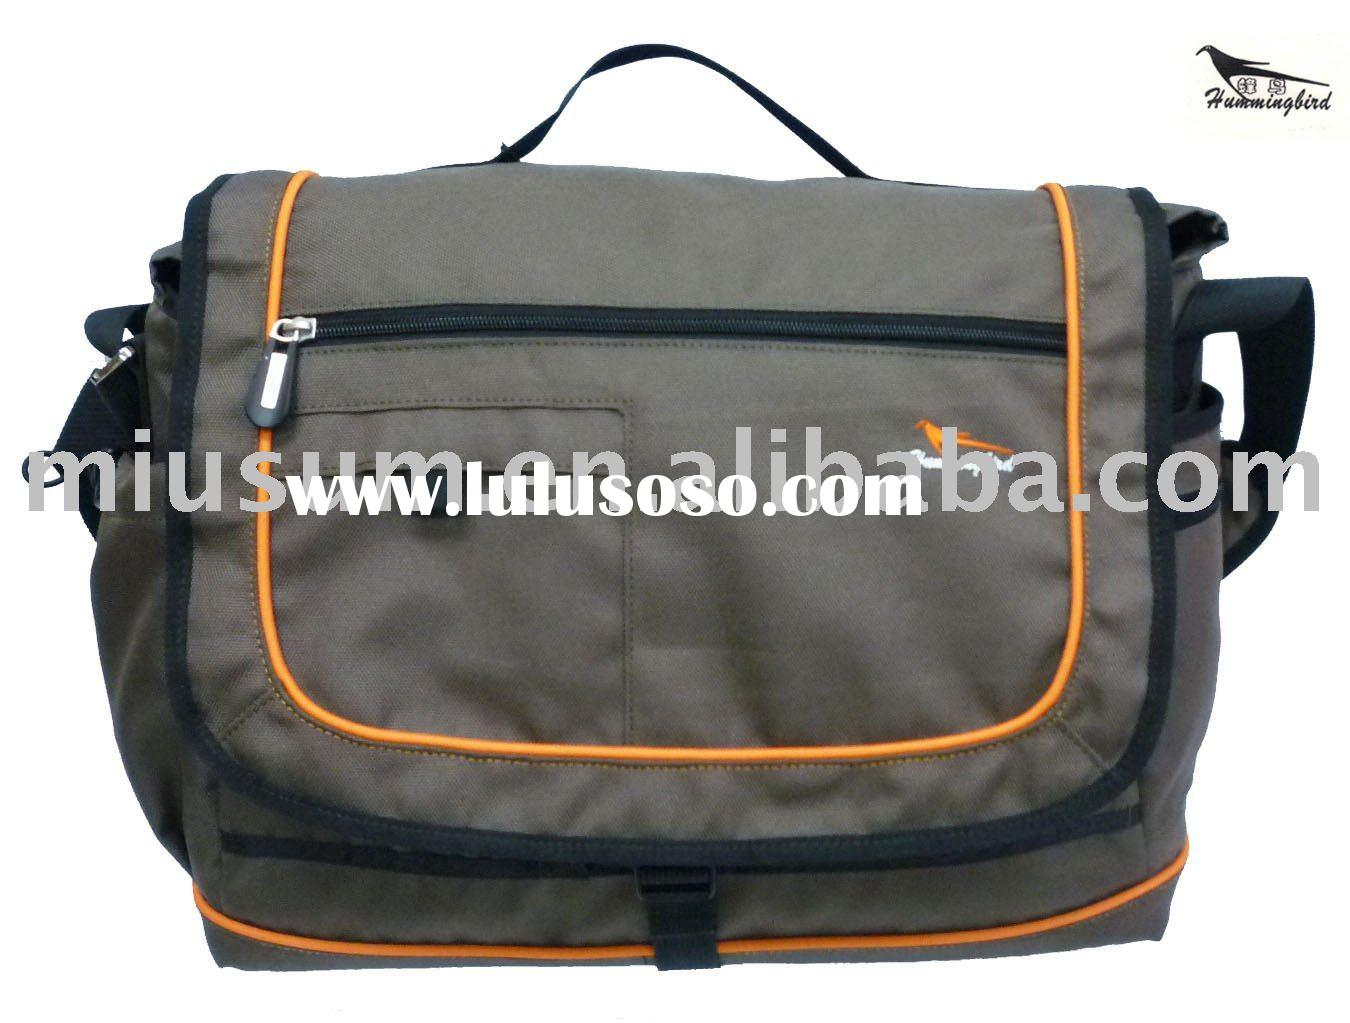 900D laptop bag document bag #MS09-AN1024